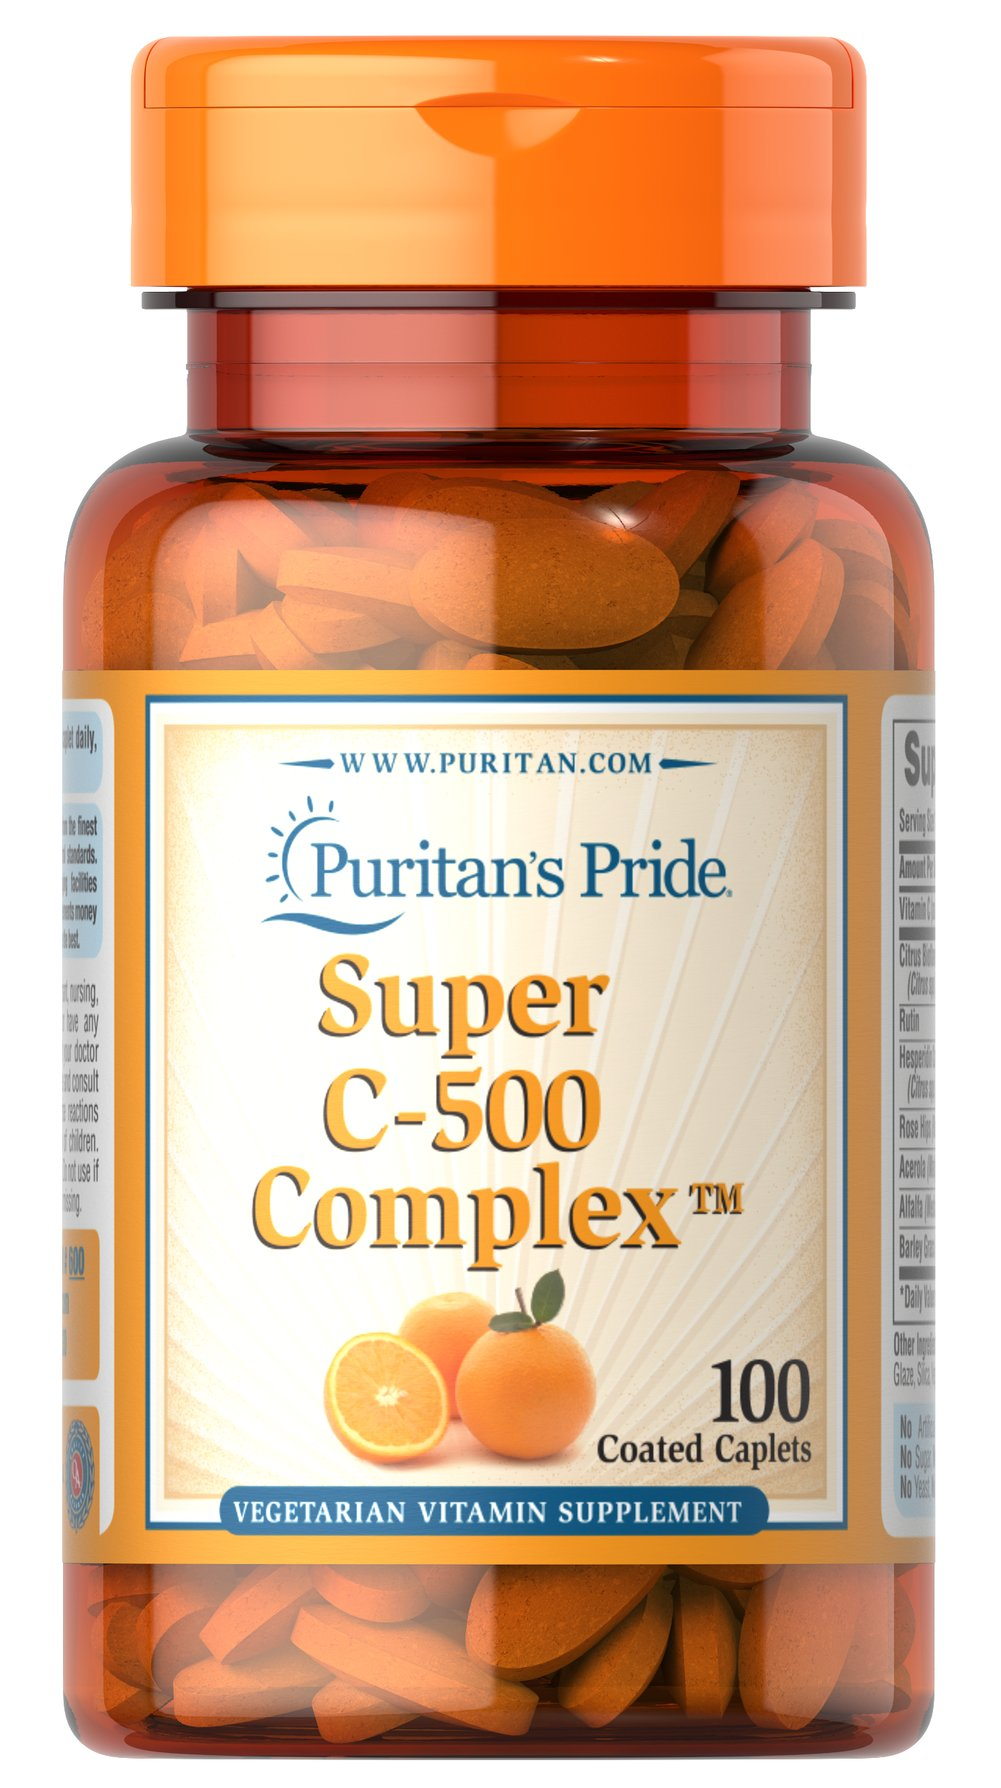 Vitamin C-500 Complex <p>Vitamin C  is essential to many functions in the body and is one of the leading vitamins for immune support.** Our C-complex includes potent Vitamin C as Ascorbic Acid. We also include Citrus Bioflavonoids, Rose Hips, Rutin, and Acerola.**</p><p>Offers superior antioxidant support.**</p><p>Supports healthy immune function and promotes well-being.**</p> 100 Coated Caplets 500 mg $12.99